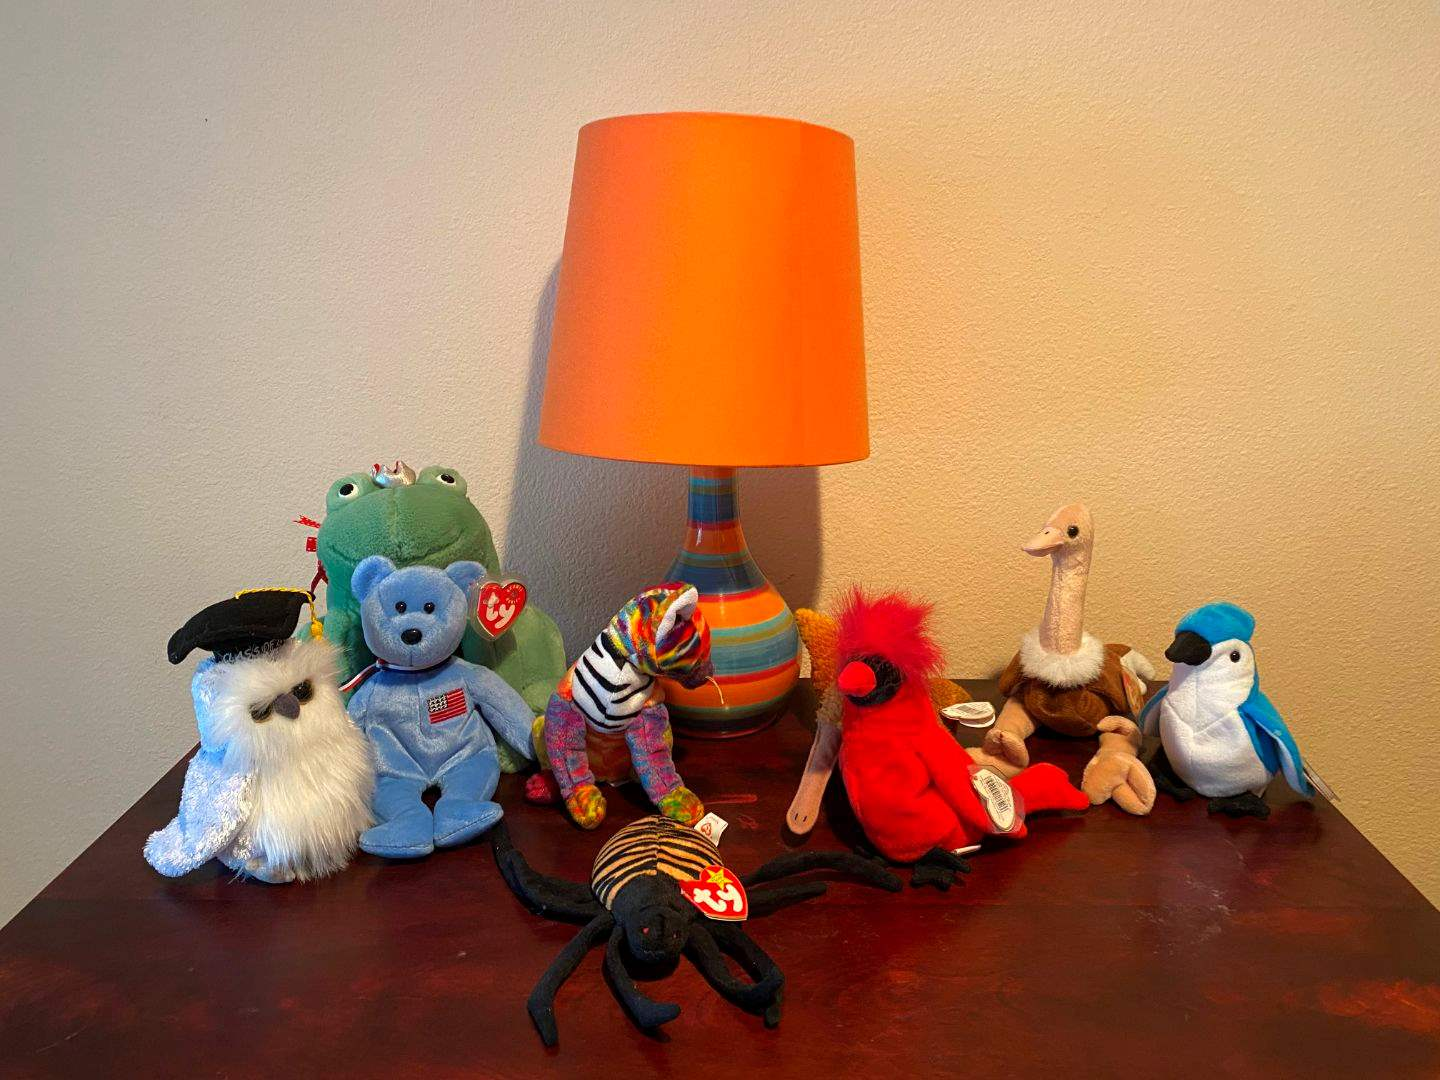 Lot # 122 - Small Colorful Lamp w/Small Collection of Beanie Babies (main image)